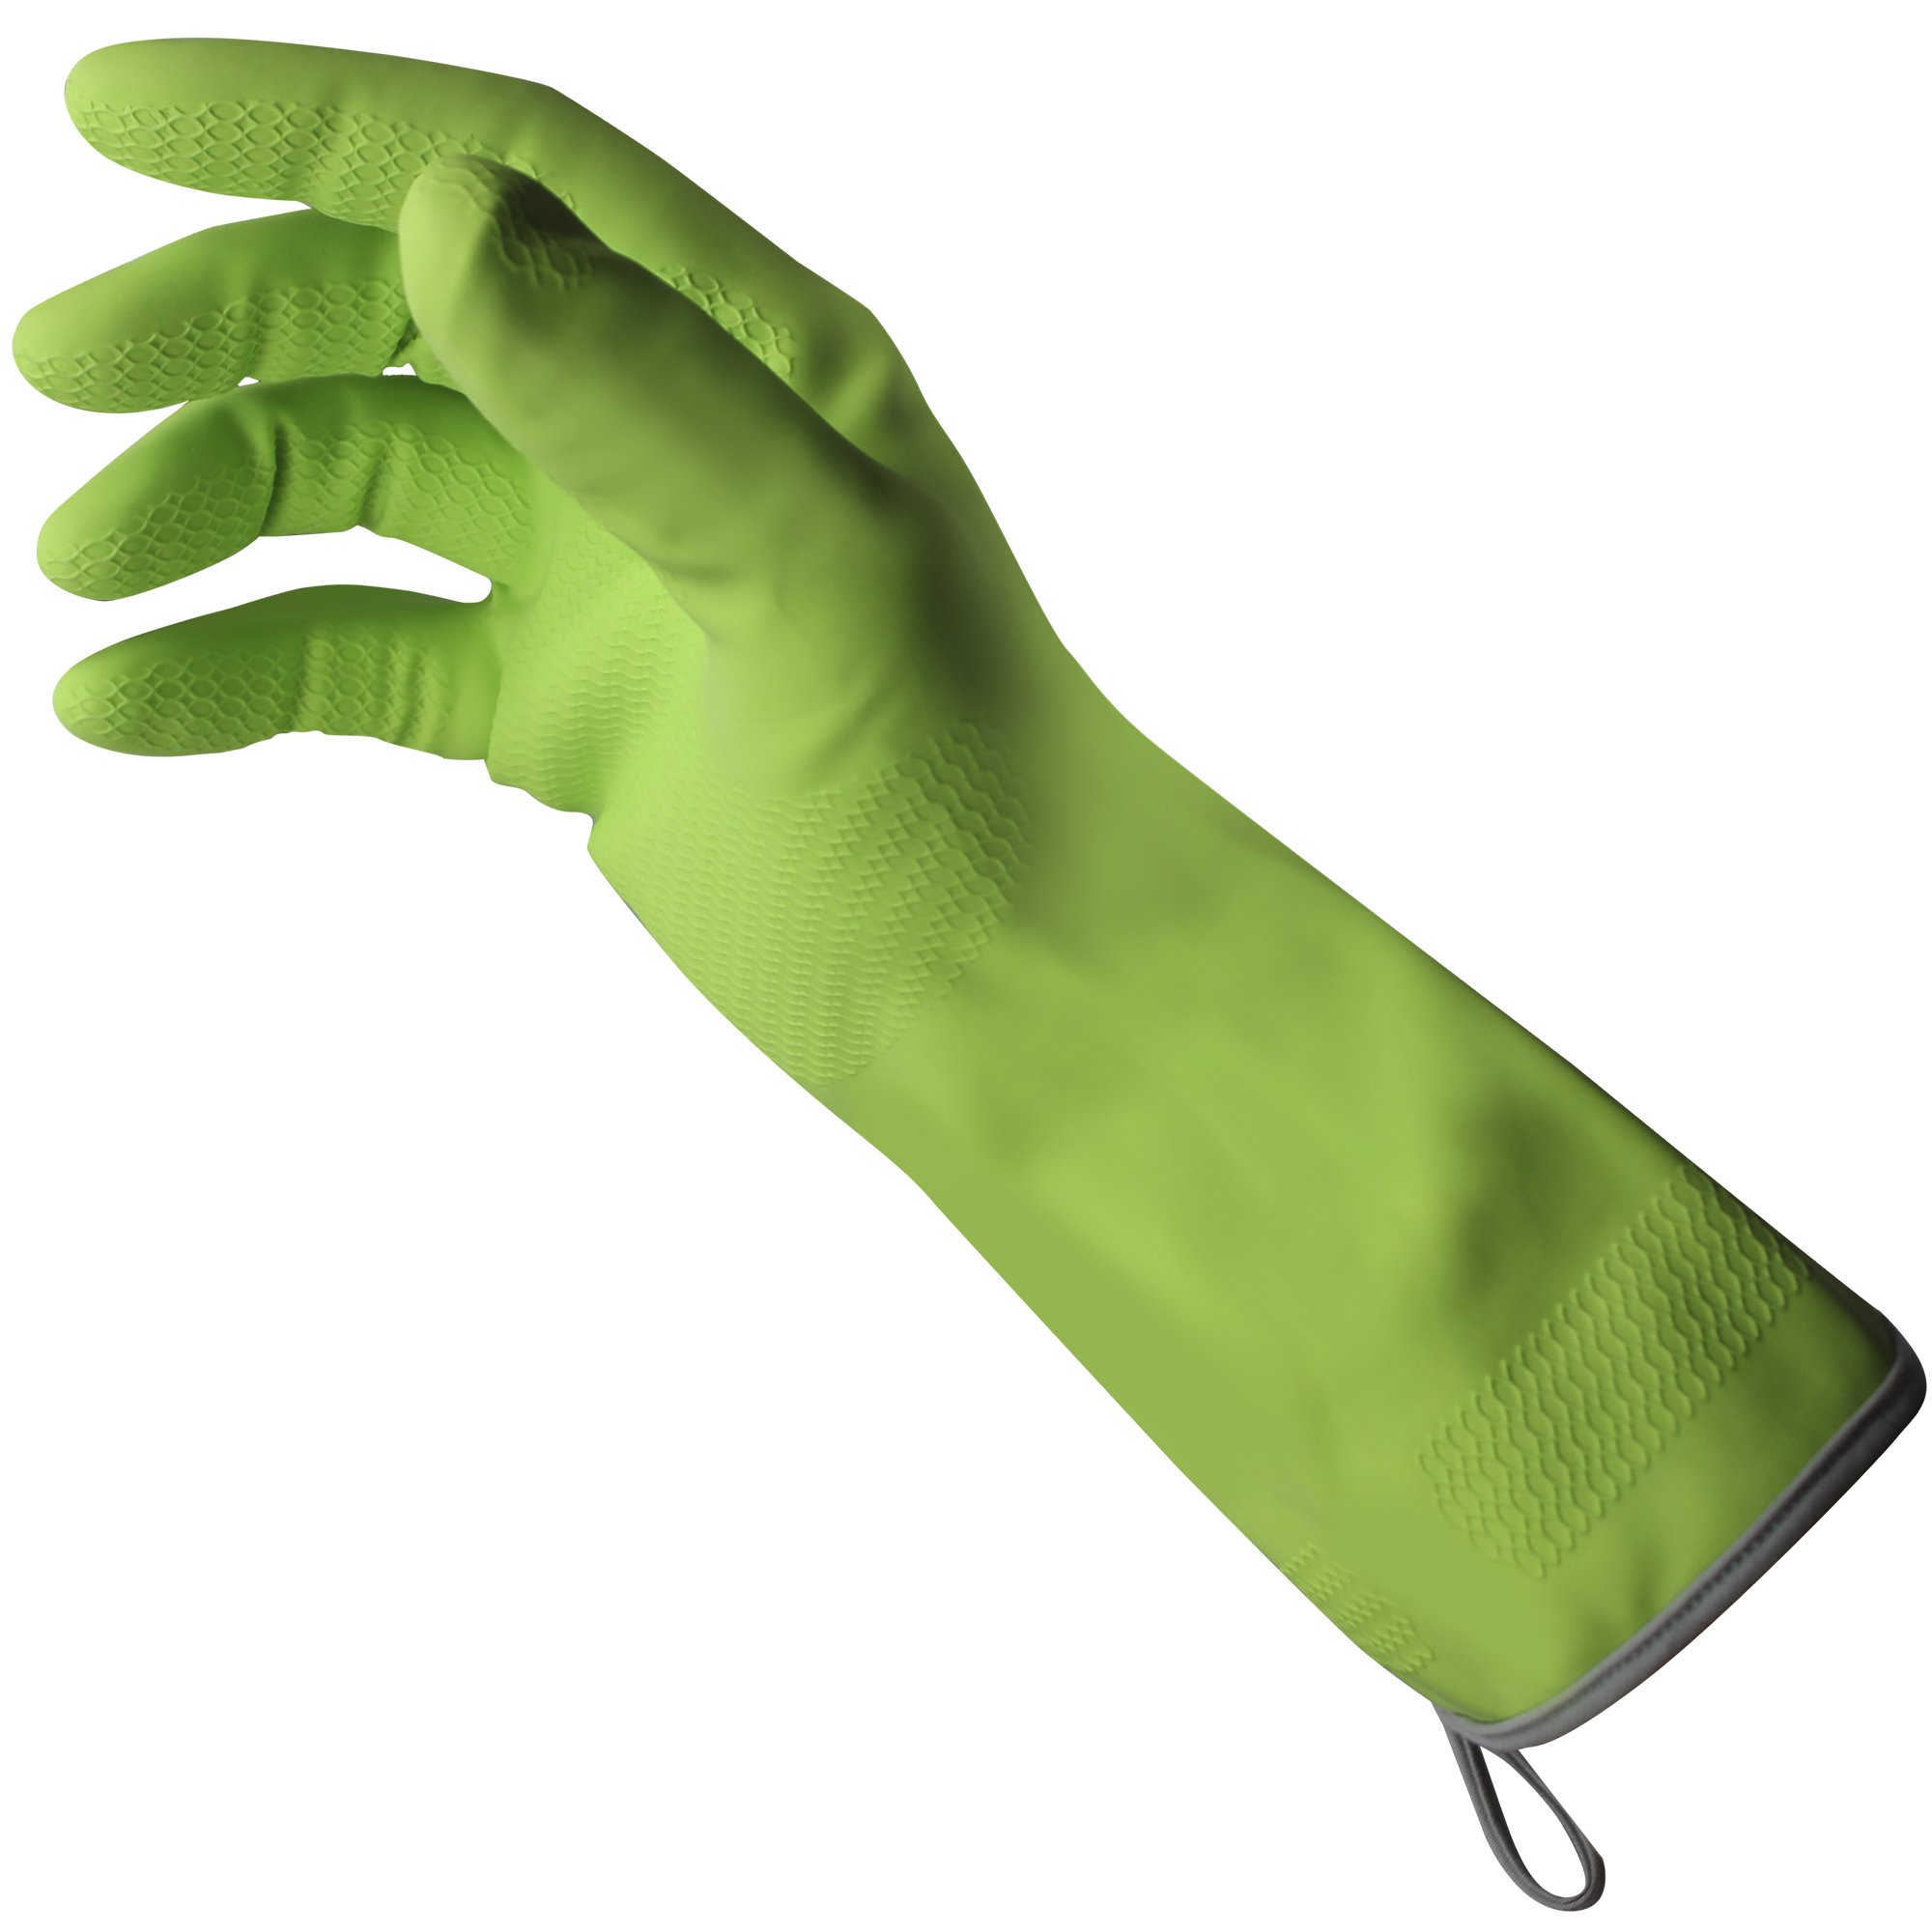 Dawn 233362 Elite, Medium Seamless Nylon Knit Lining, Non-Slip Wet & Dry Grip, Reinforced Cuff with Hanging Loops Gloves, (M)